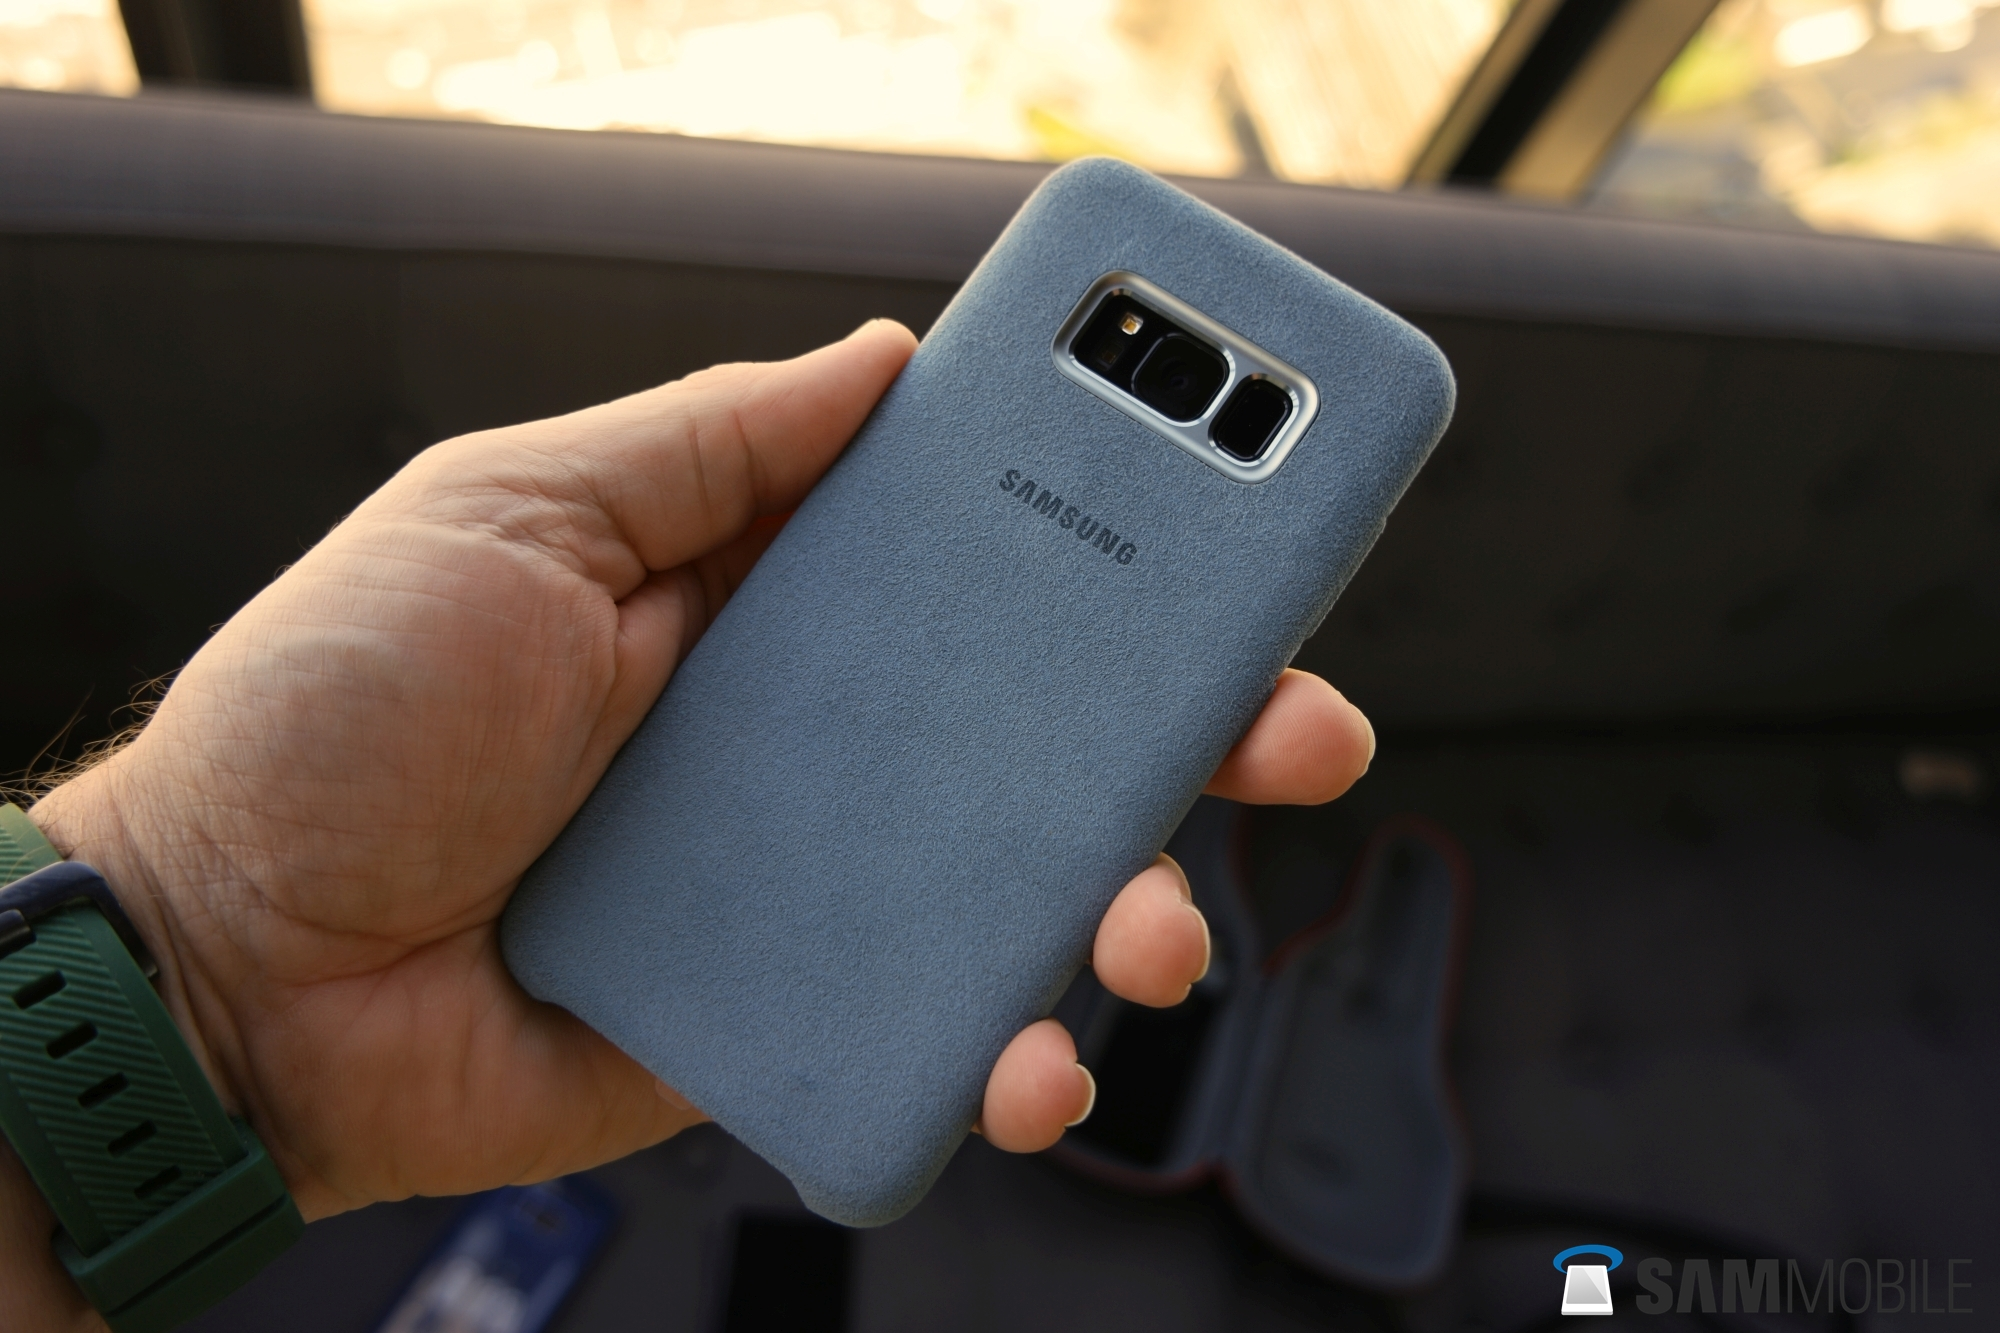 cheaper c3e0c 3a337 Here are the Samsung Galaxy S8 and Galaxy S8+ cases in pictures ...